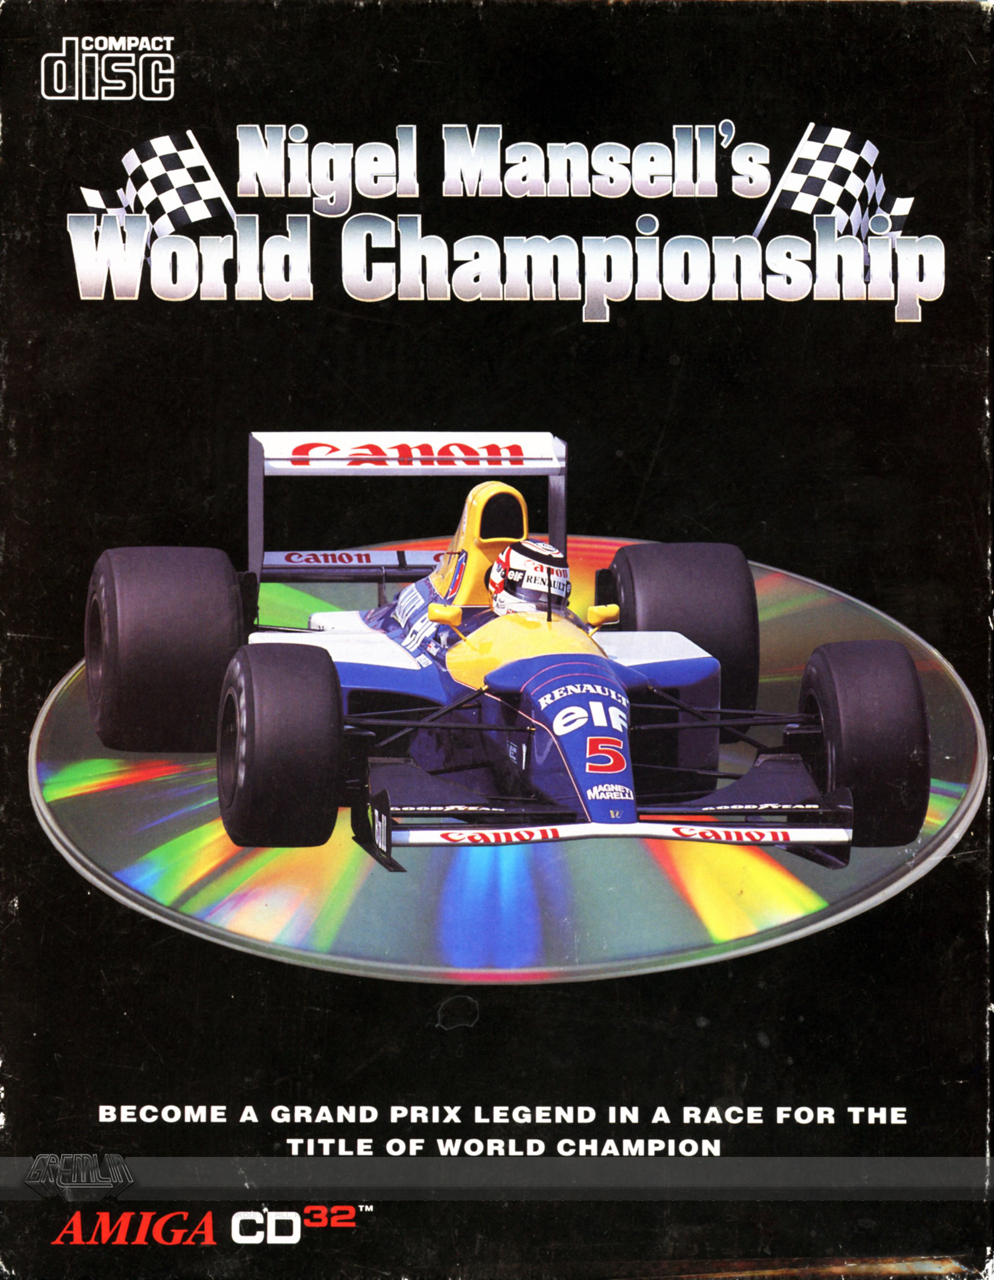 Nigel Mansells World Championship (CD32)